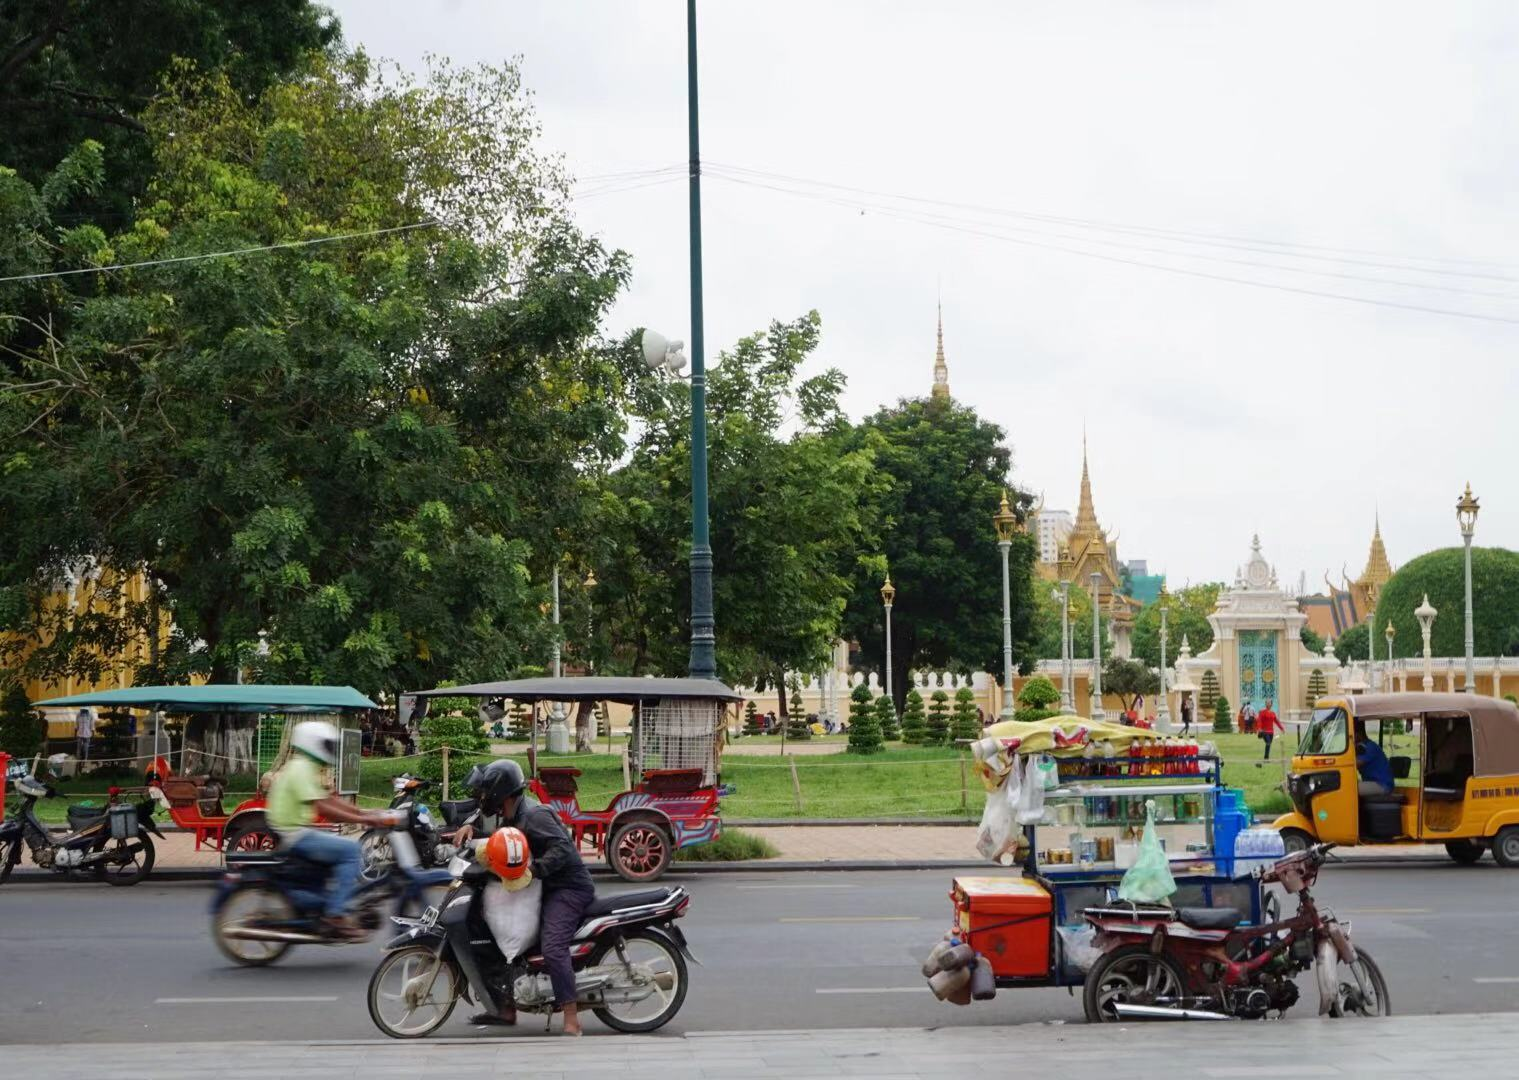 phnom penh traffic.jpg